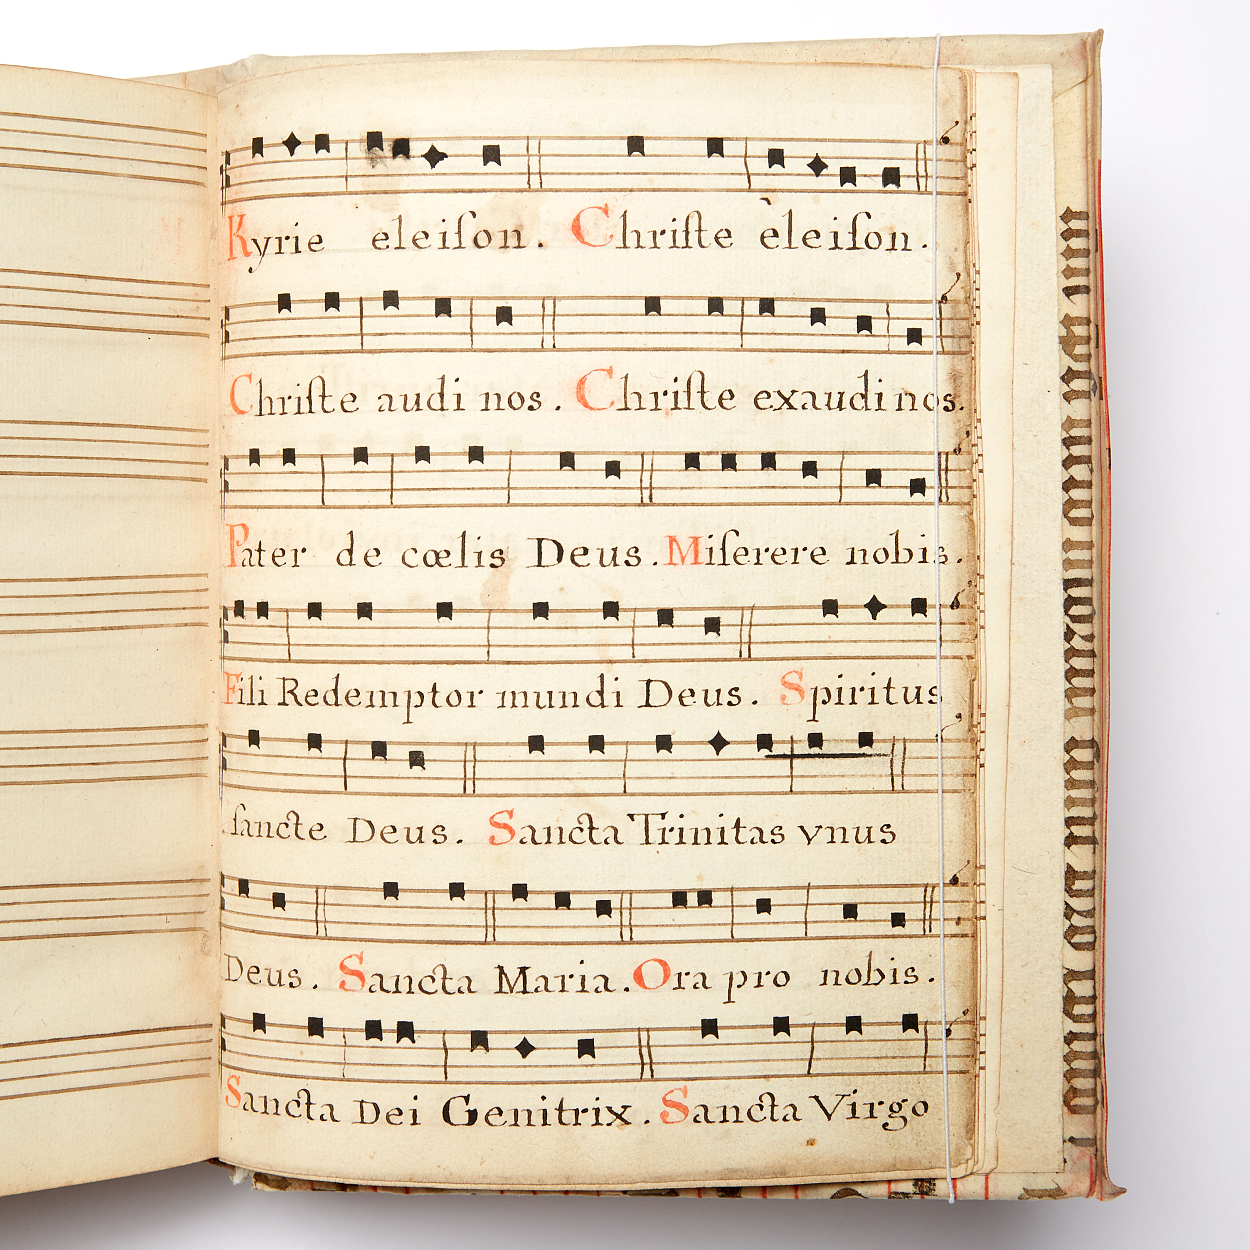 18th century hymnal in manuscript